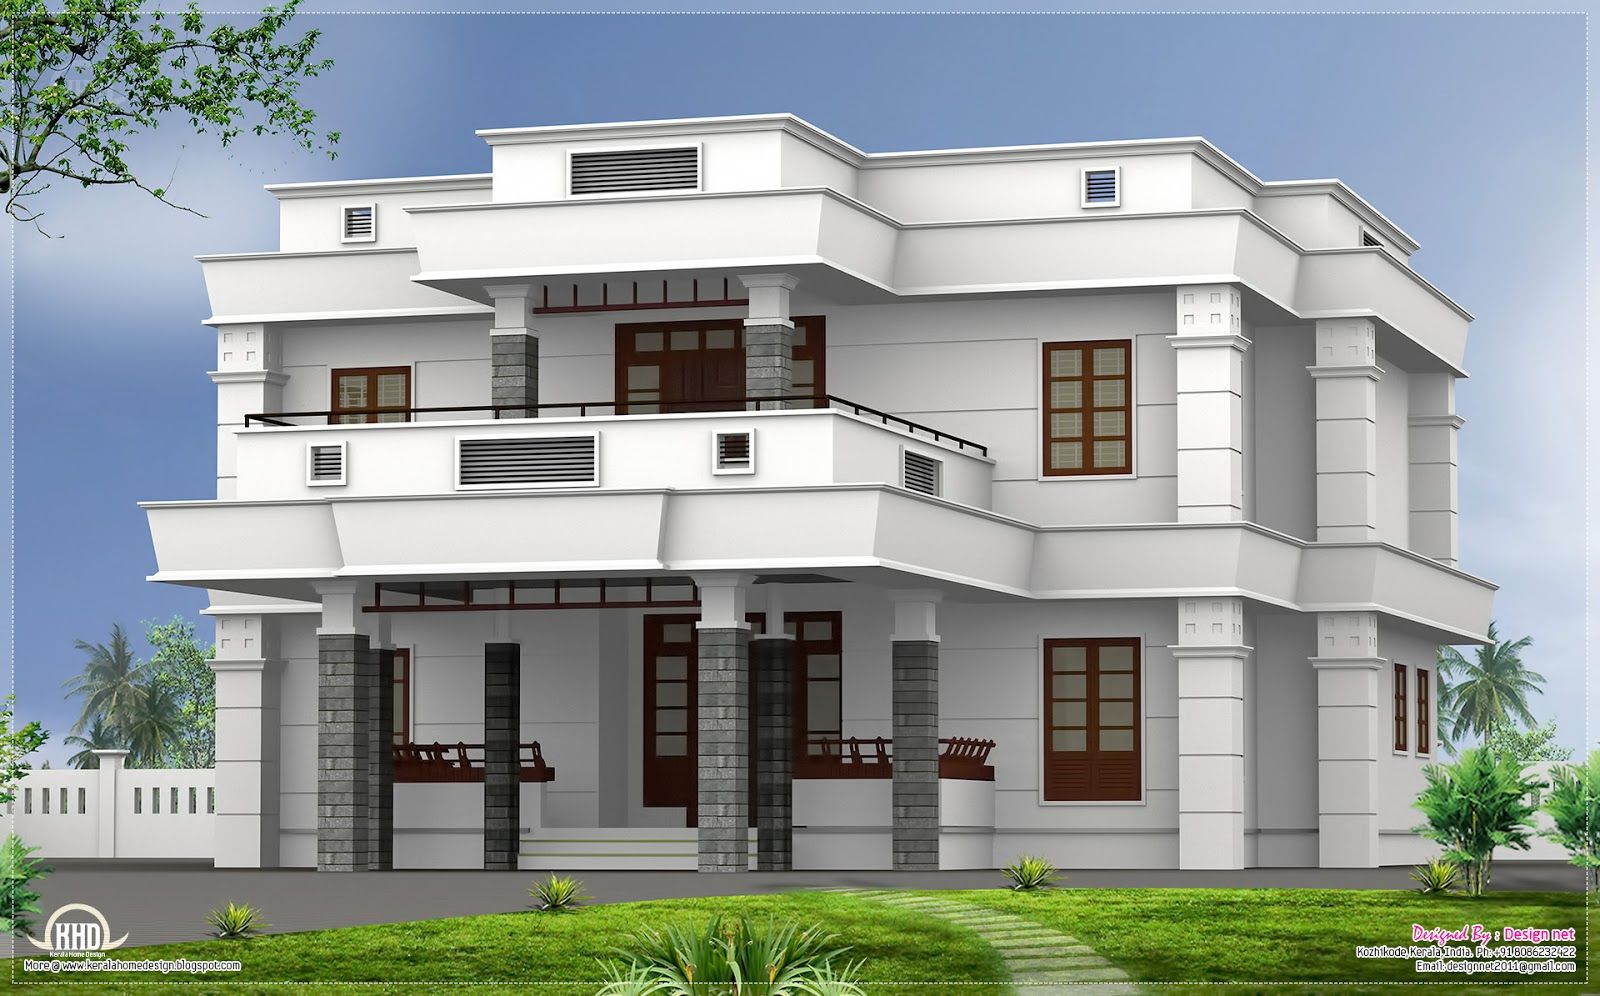 Flat roof homes designs bhk modern flat roof house for Apartment roof design